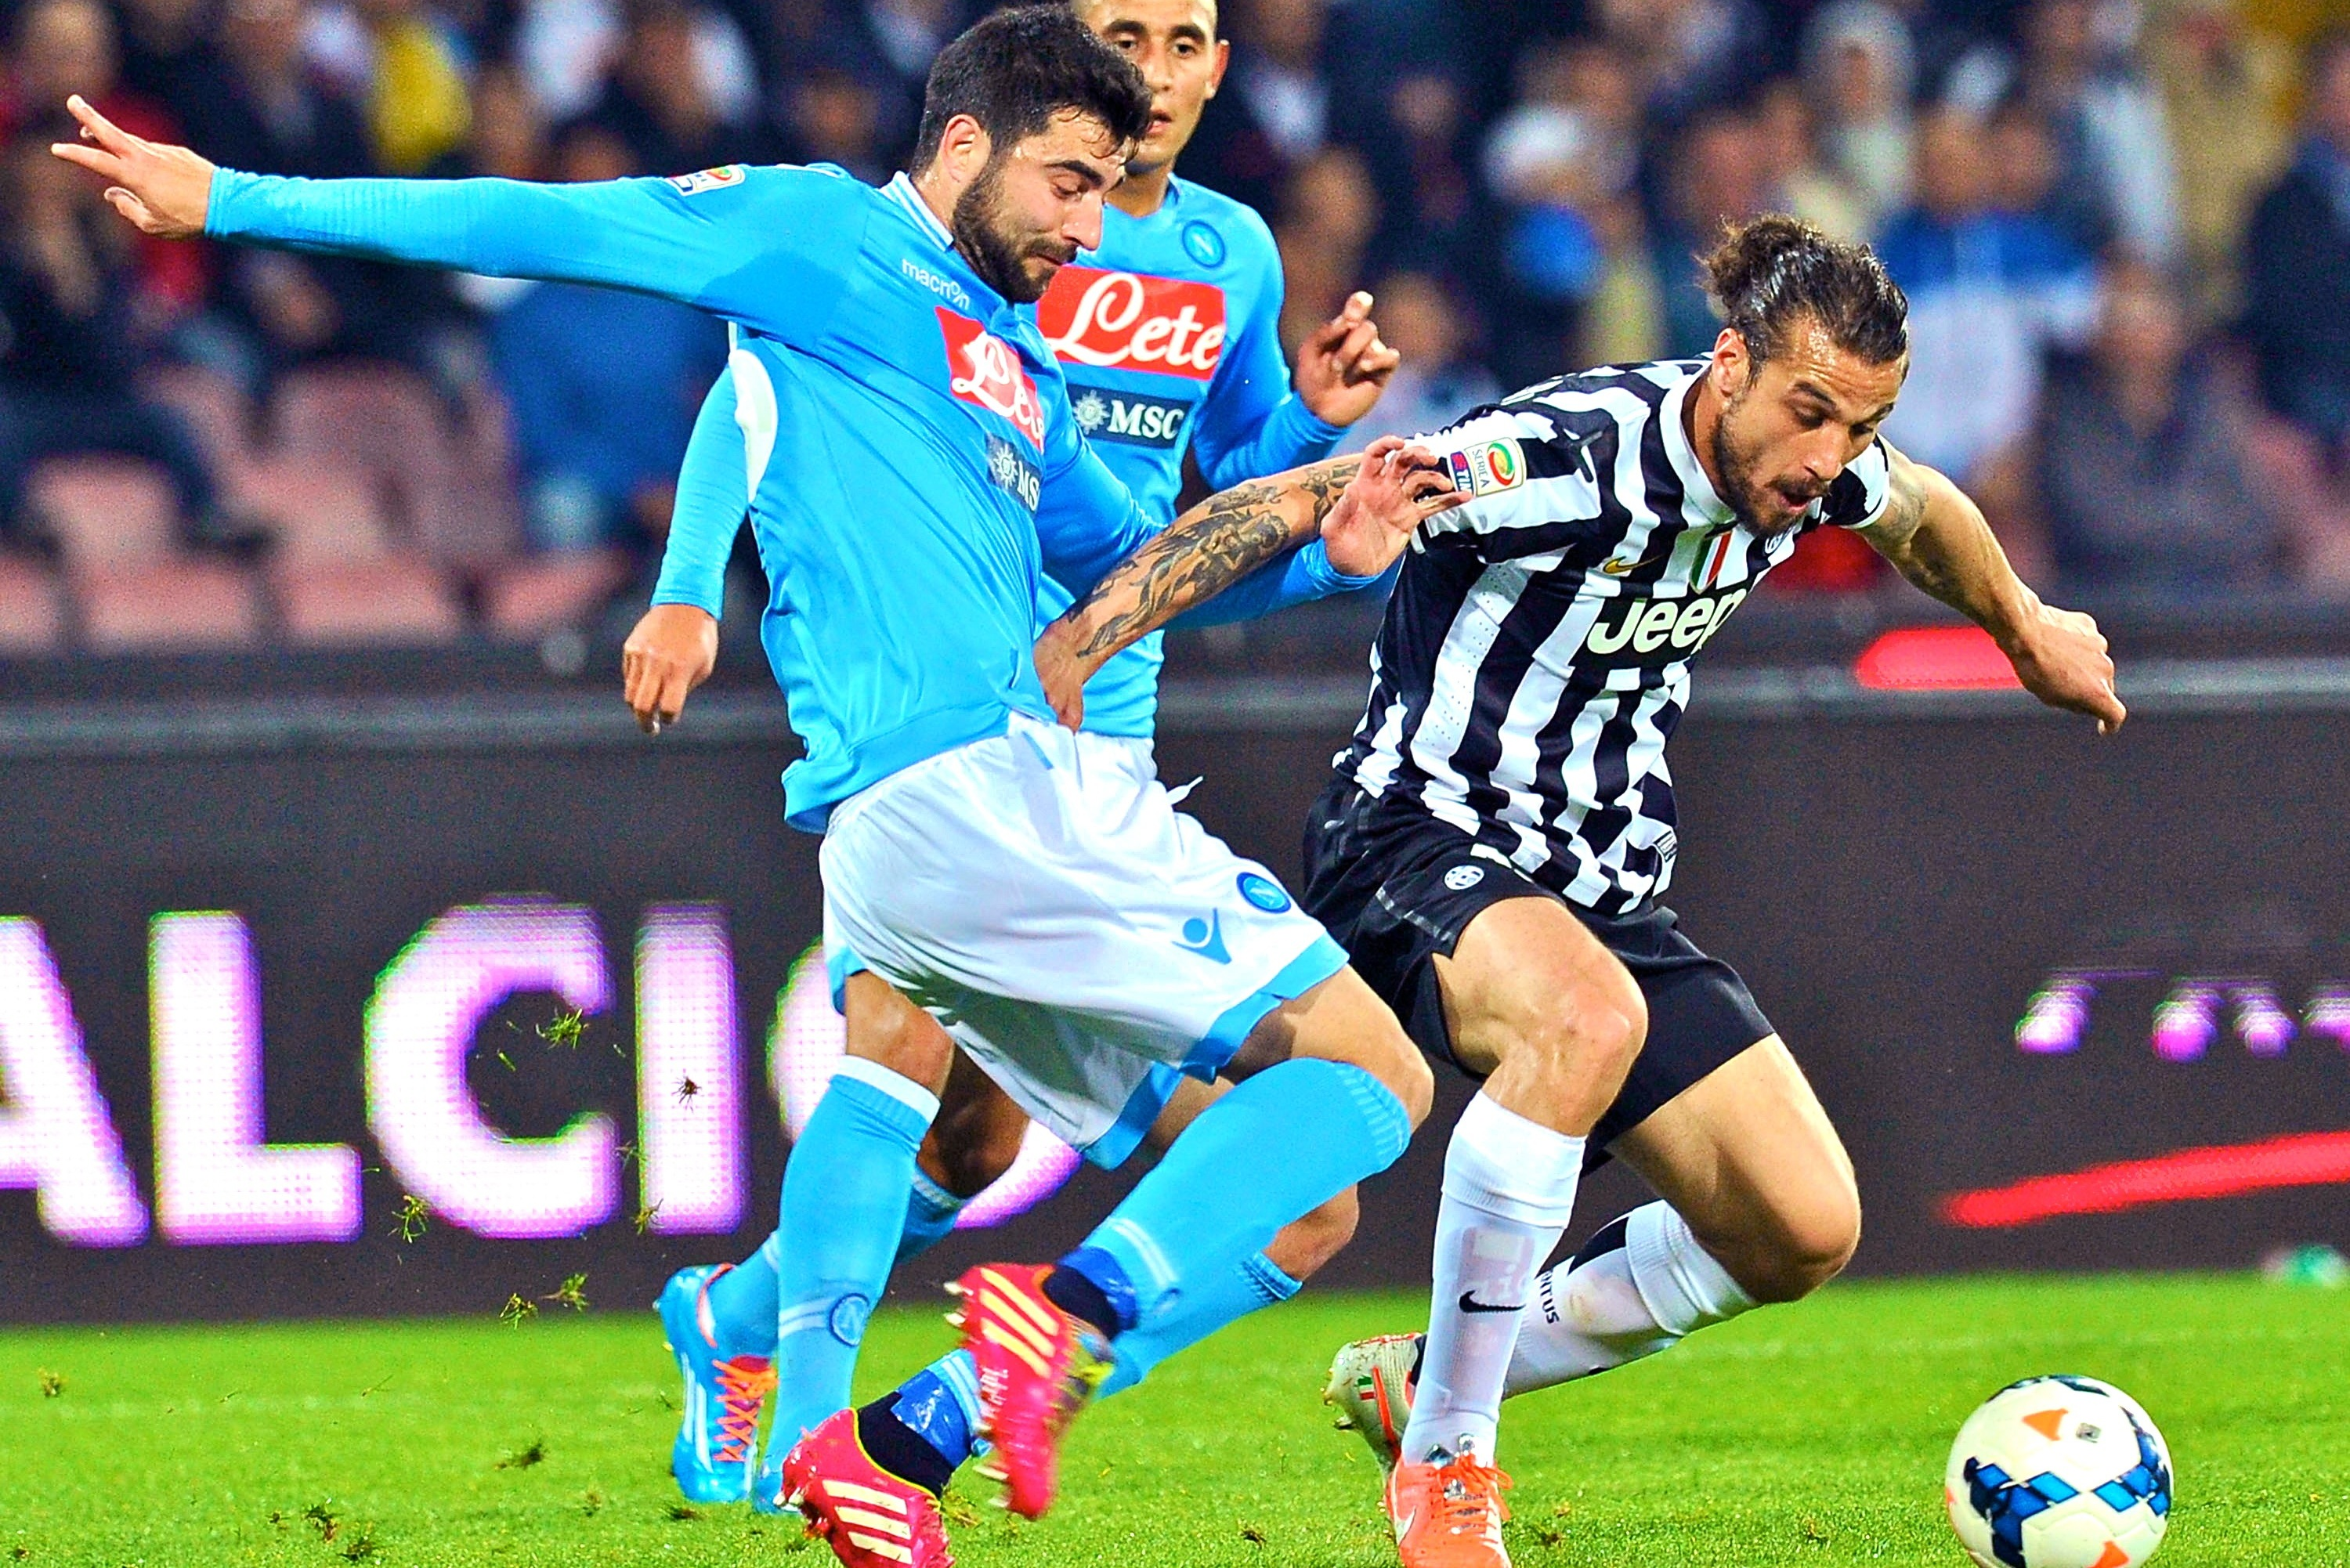 Napoli Vs Juventus Score Grades And Post Match Reaction Bleacher Report Latest News Videos And Highlights